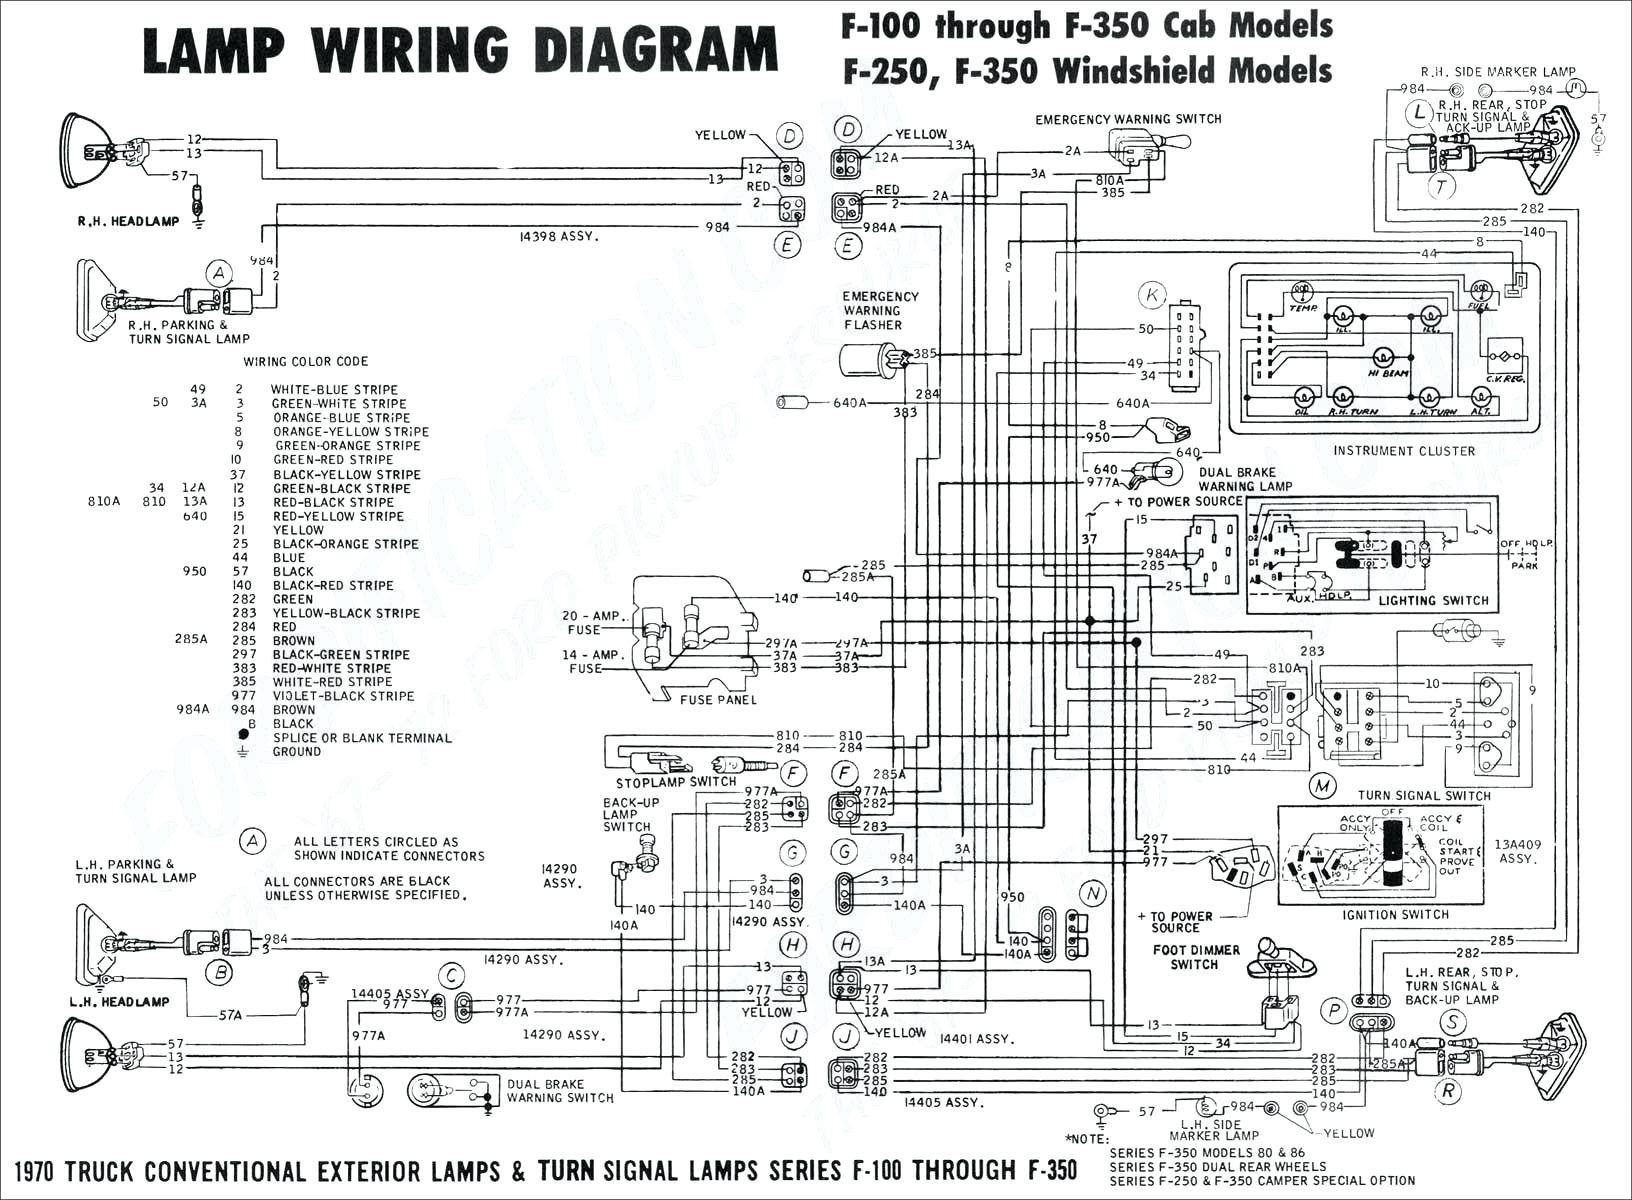 Wiring Diagram For 1968 Ford F250 - Allis Chalmers 180 Wiring Diagram for  Wiring Diagram Schematics | Ford F250 Wiring Schematic |  | Wiring Diagram Schematics